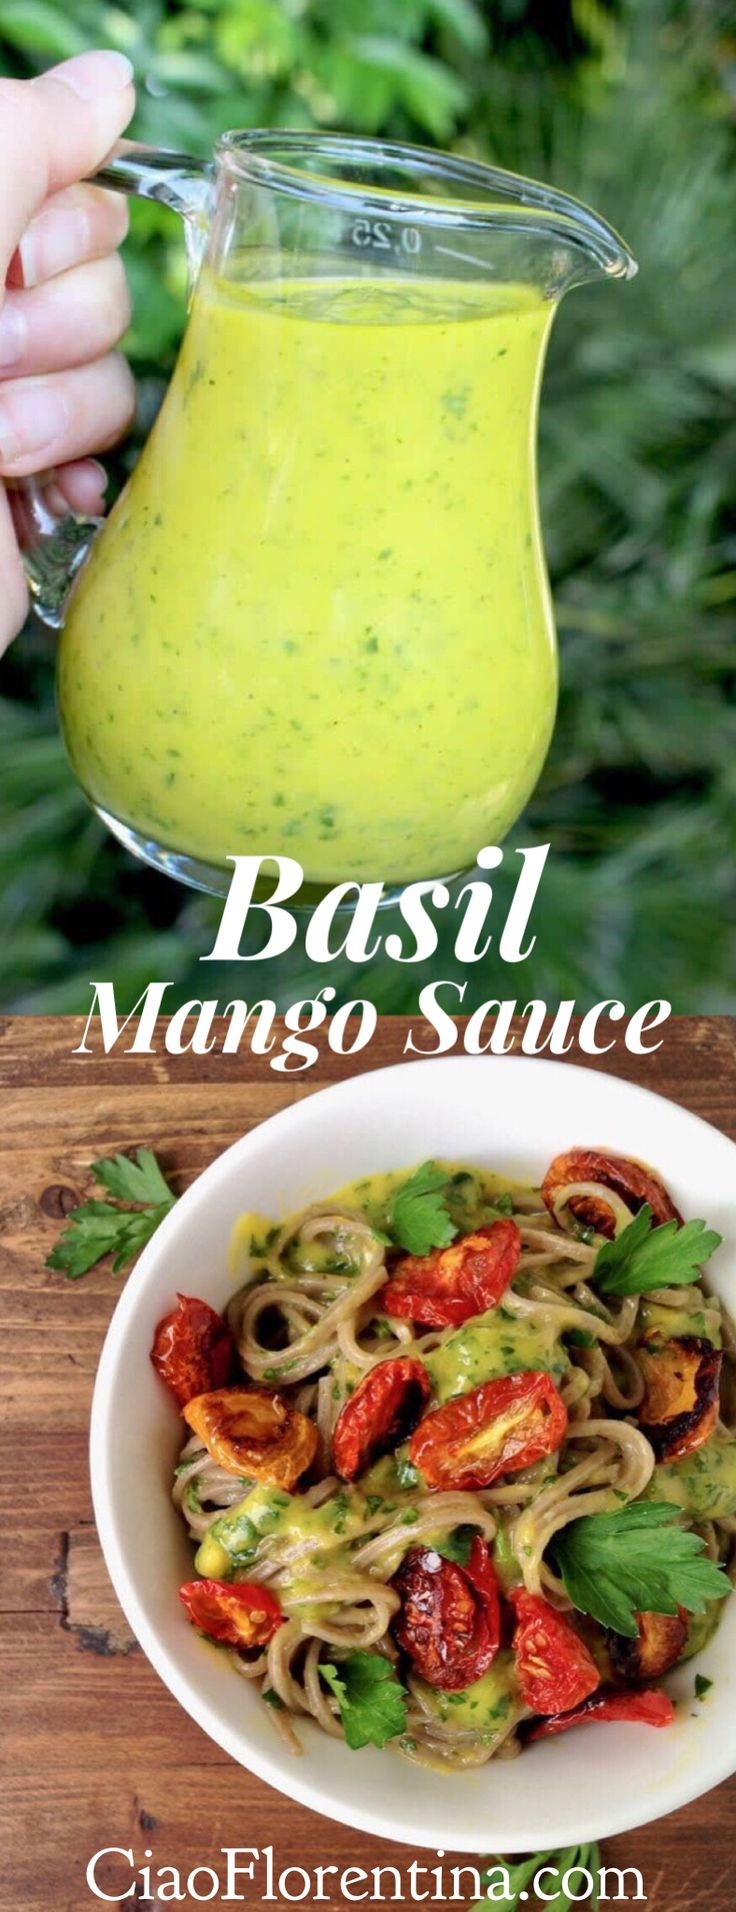 Basil Mango Sauce Recipe, ready in 5 minutes, sweet, savory and tangy, perfect for fish, scallops, chicken or your favorite pasta | CiaoFlorentina.com @CiaoFlorentina